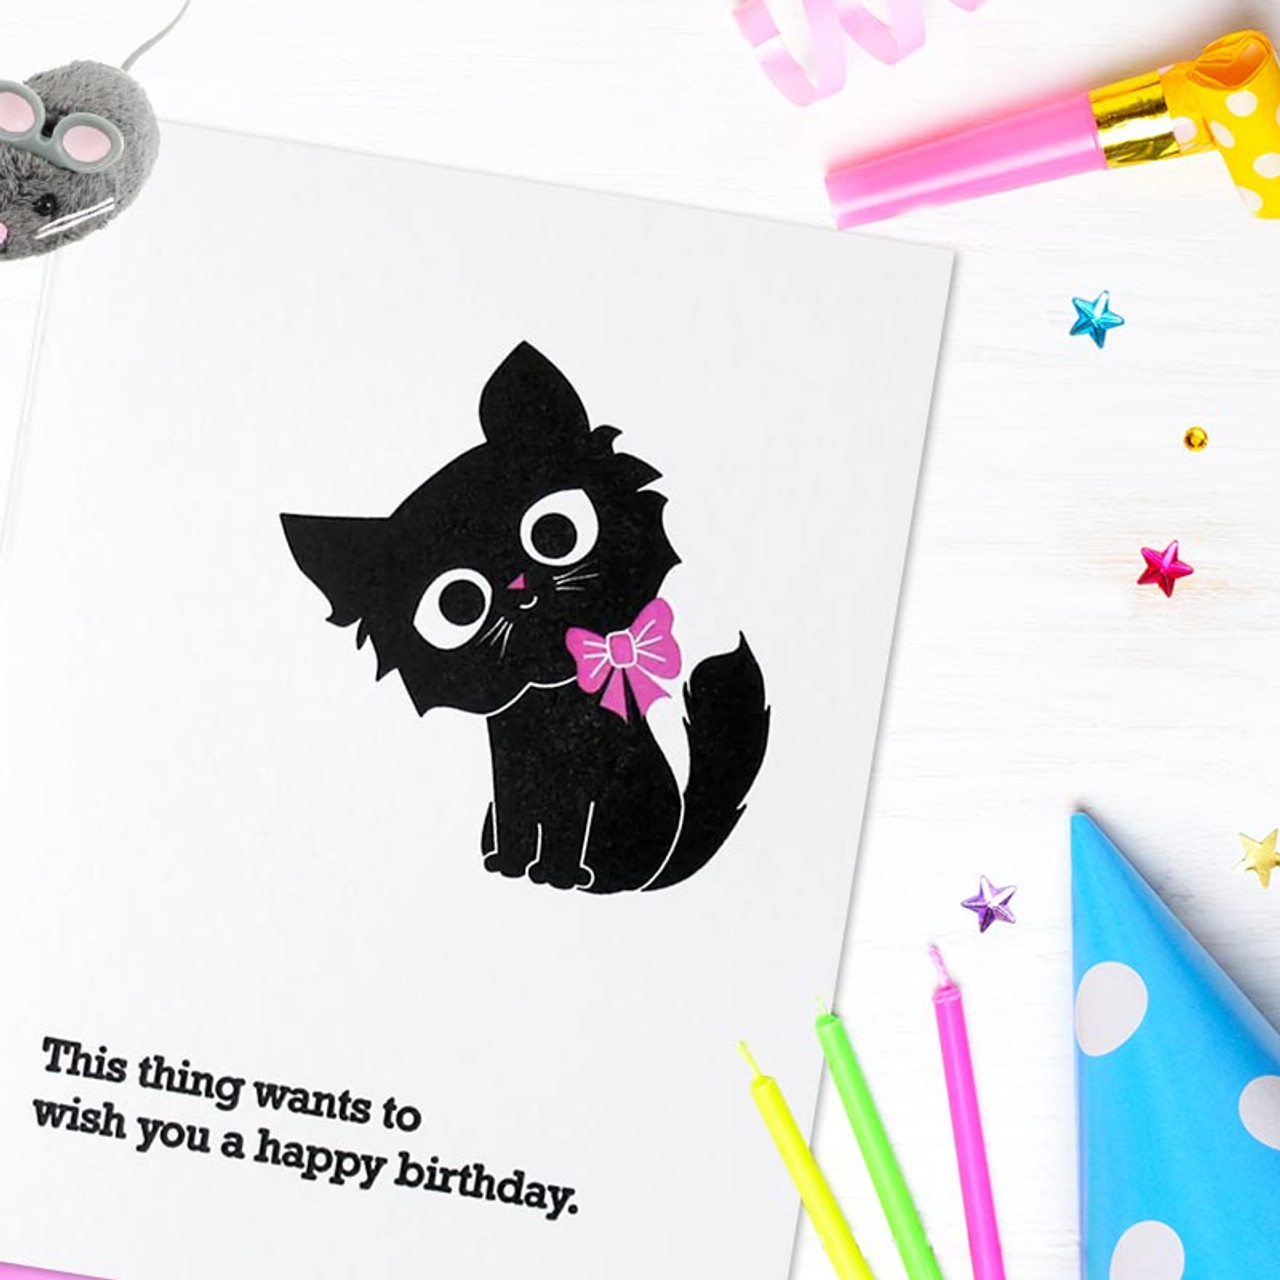 Happy Birthday Card from the cat!